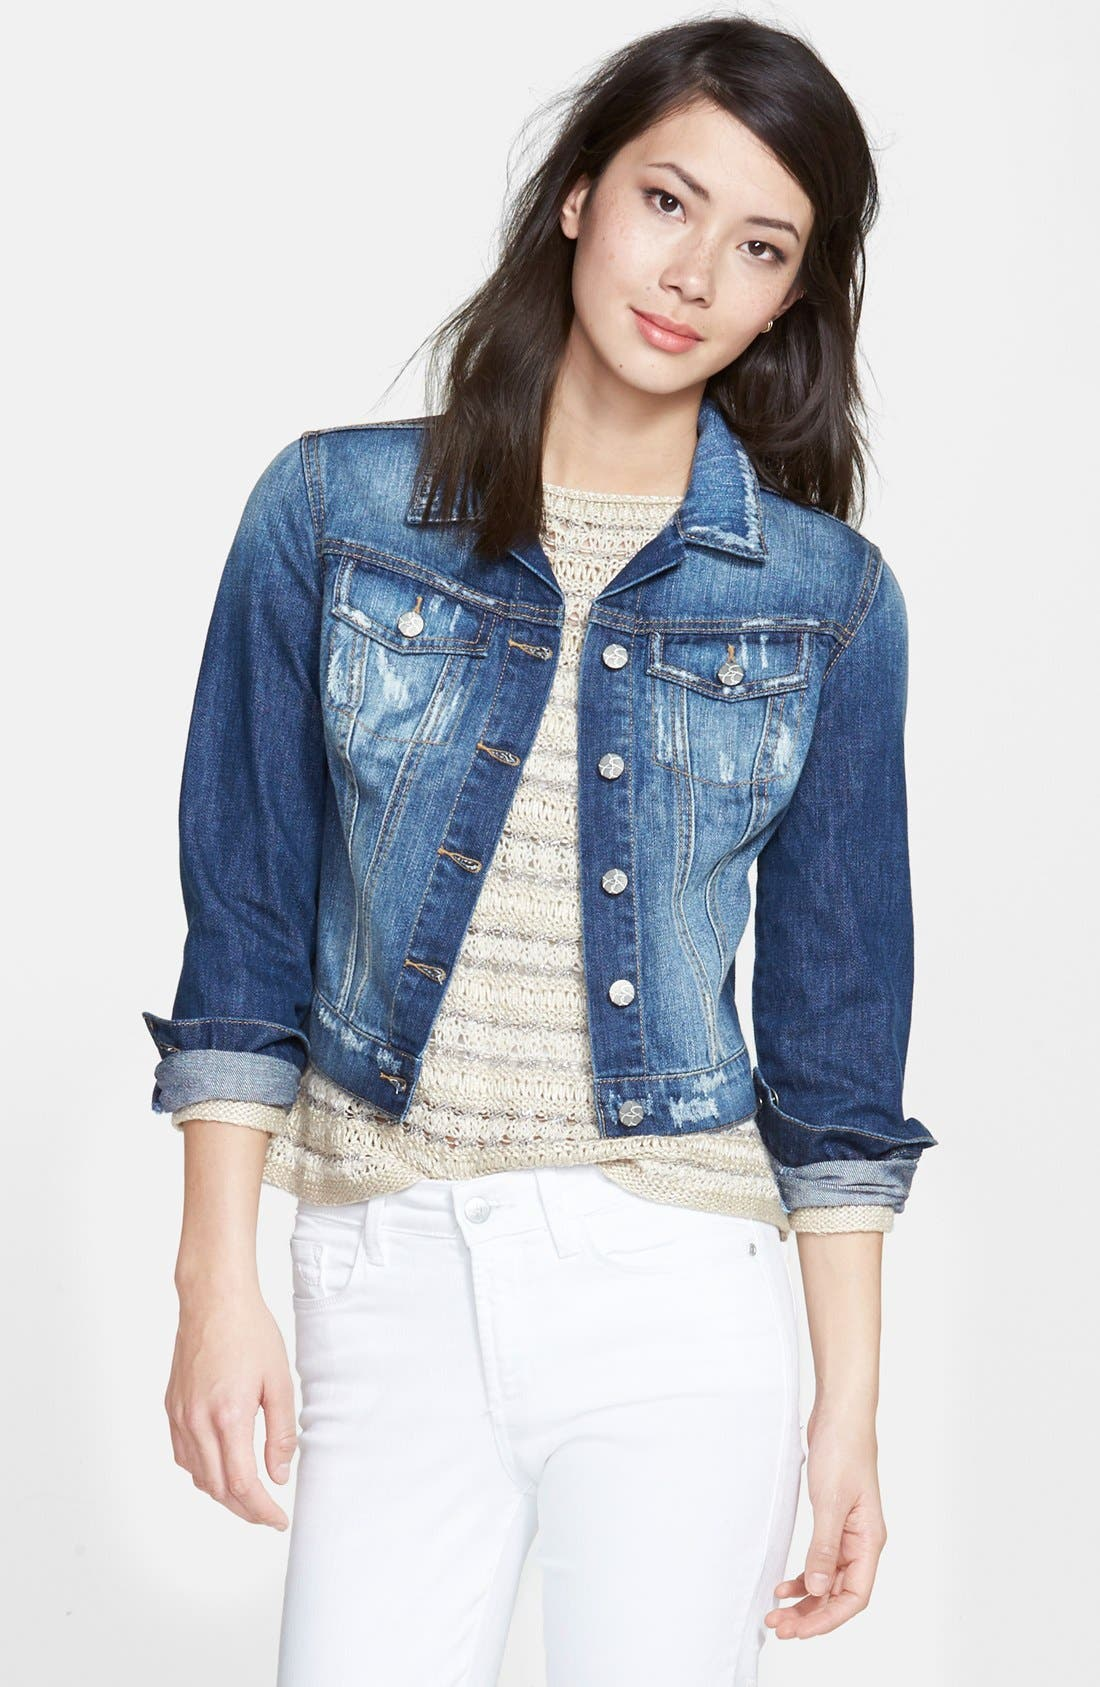 Alternate Image 1 Selected - Jessica Simpson 'Pixie' Denim Jacket